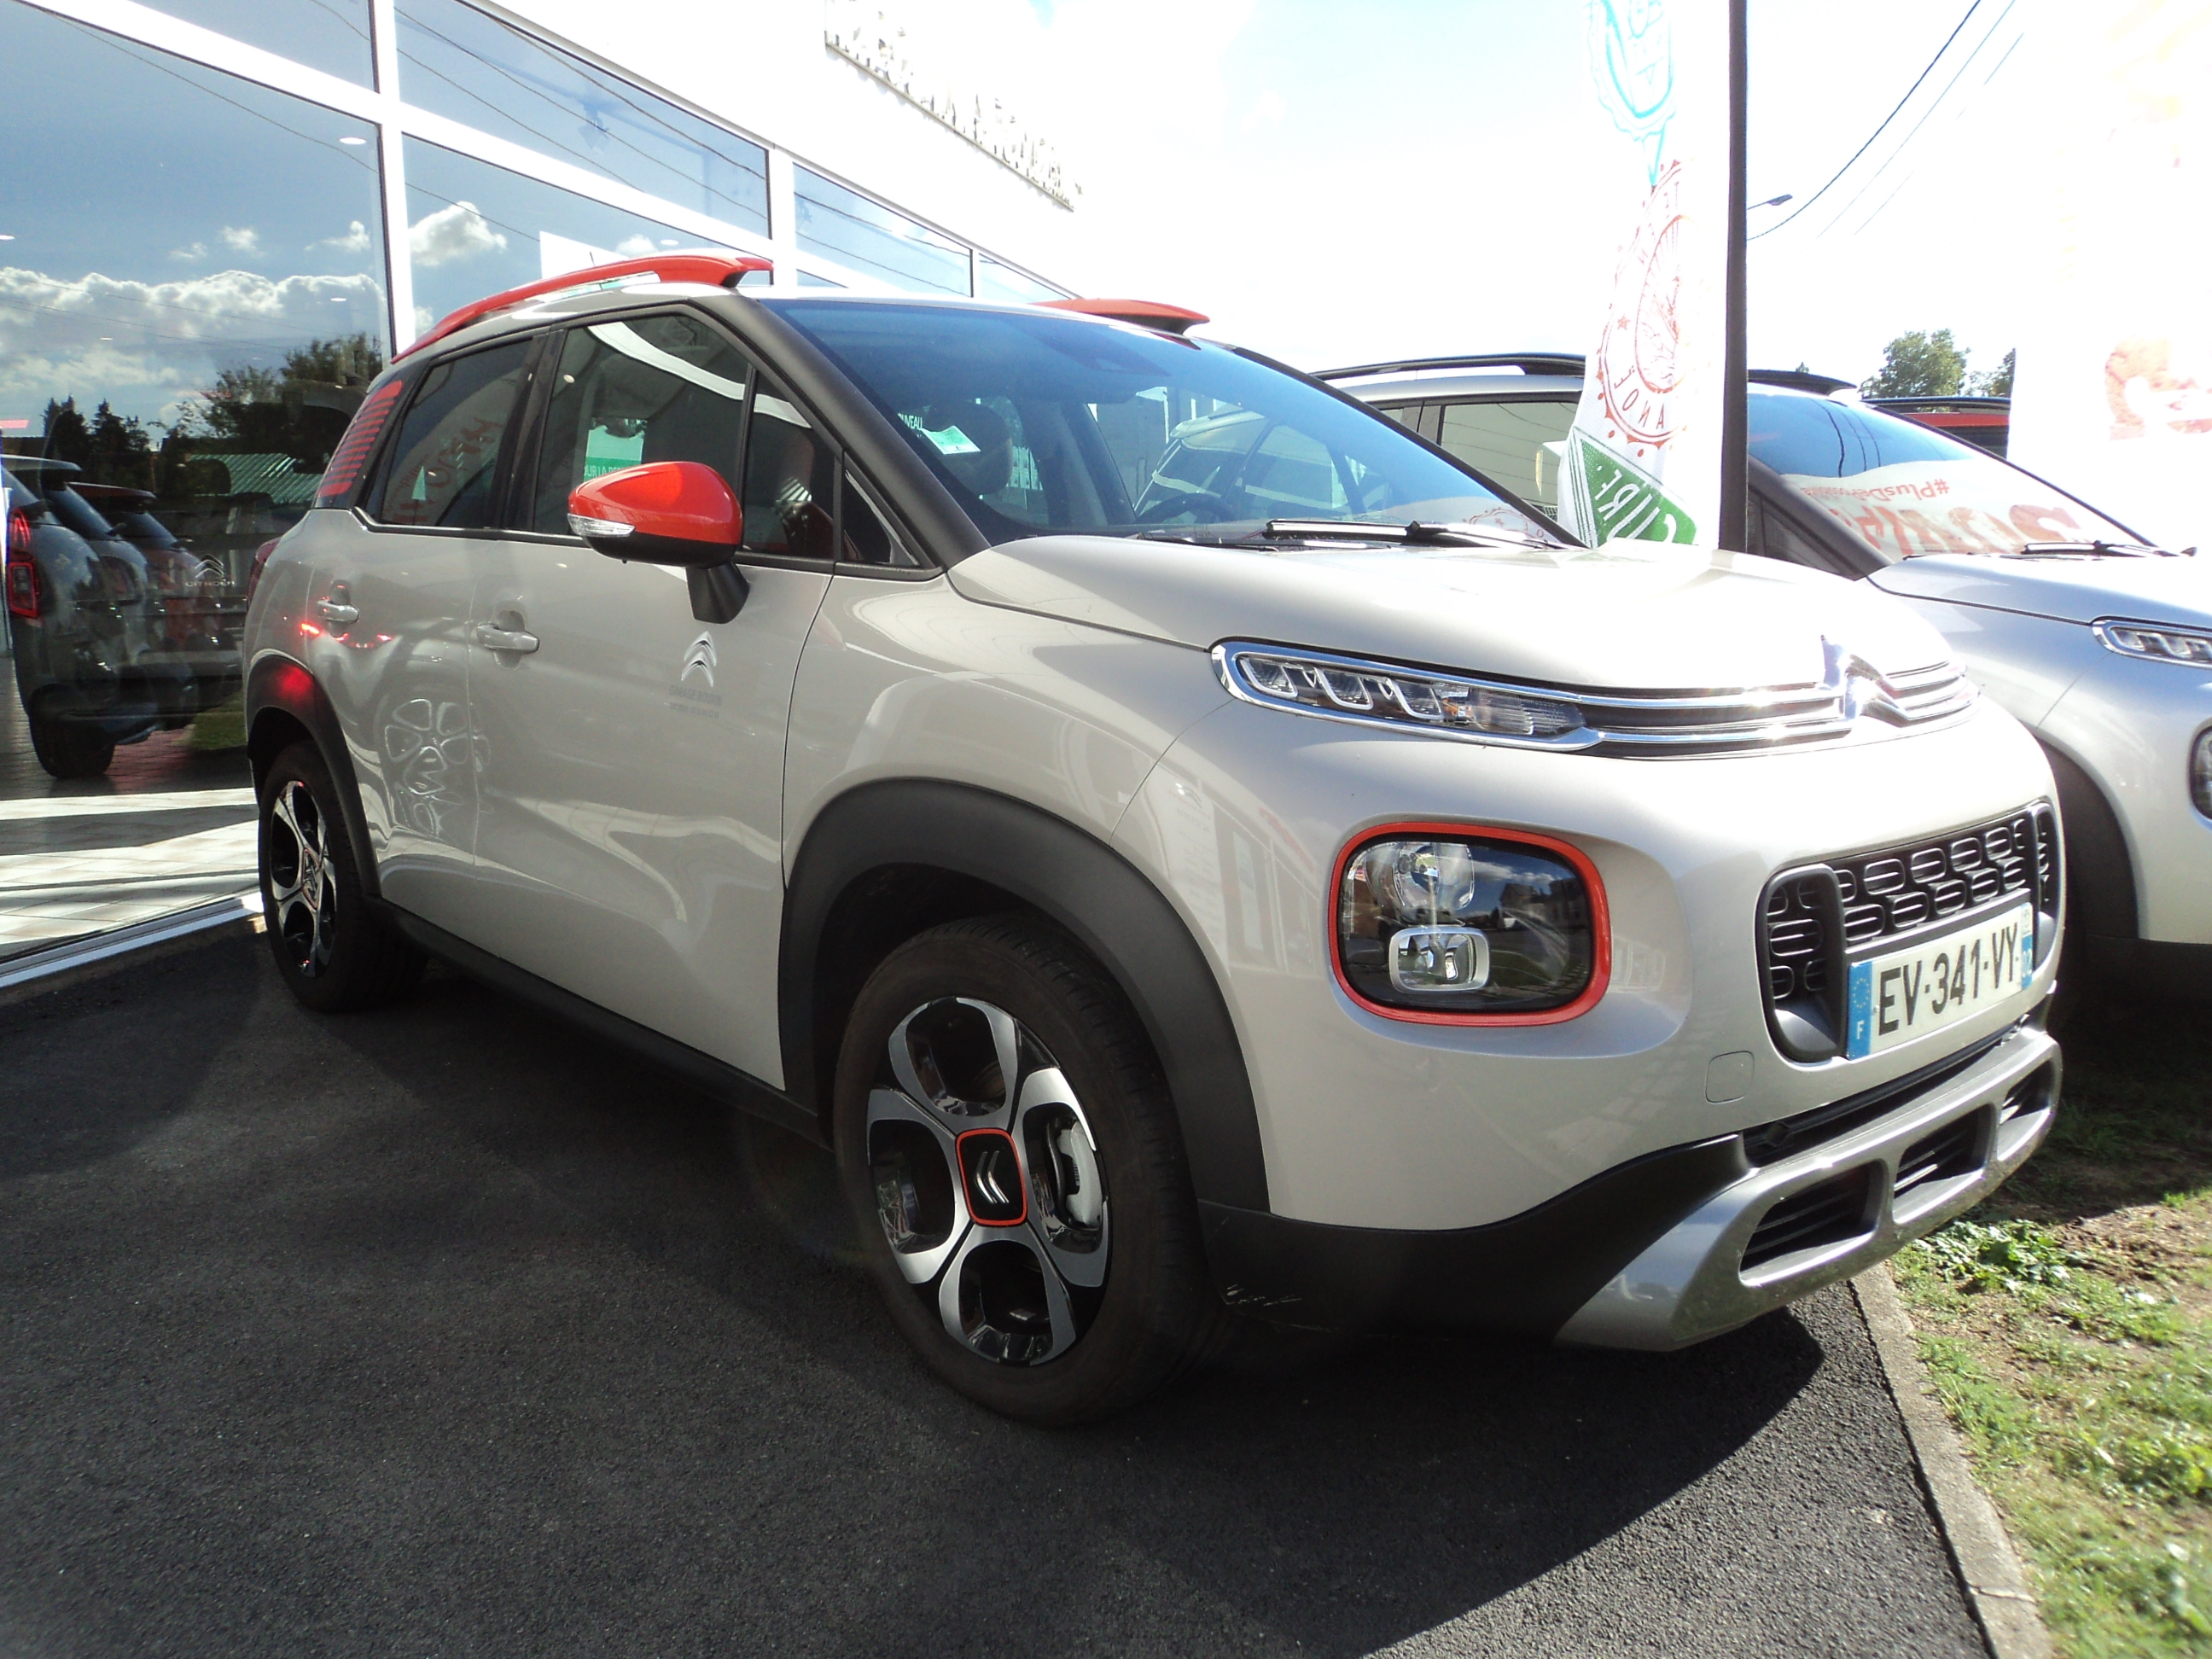 CITROEN C3 AIRCROSS PURE TECH 110 SHINE